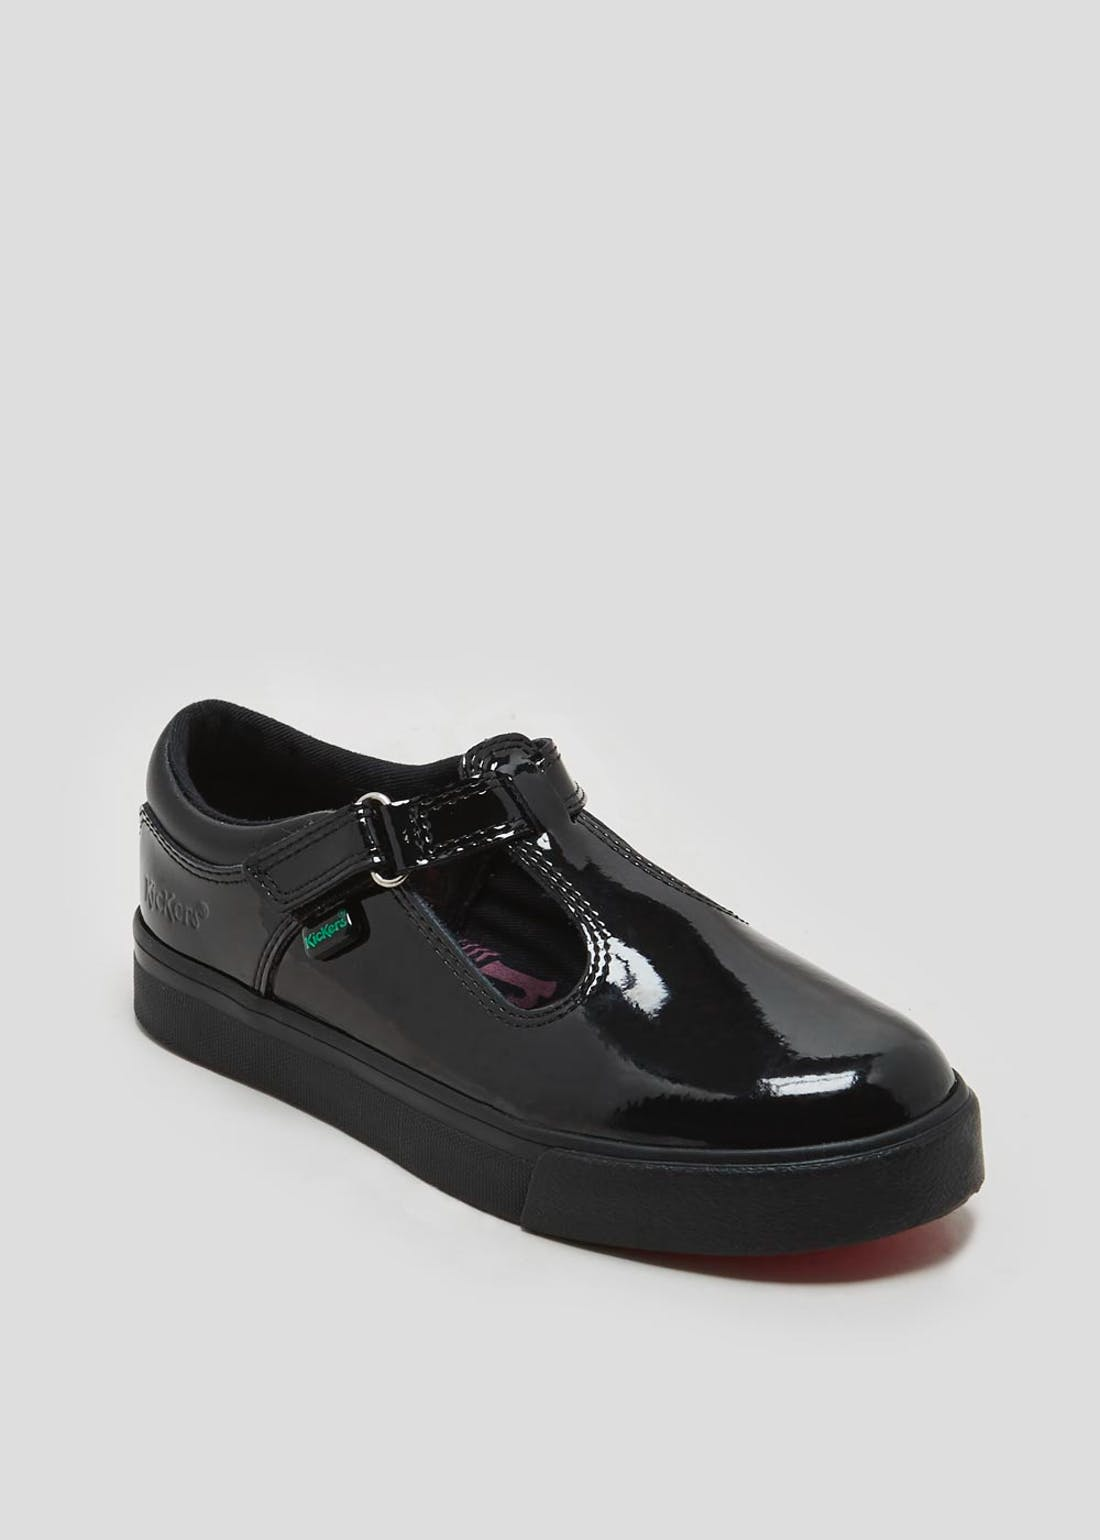 Girls Kickers Tovni T Patent School Shoes (Younger 5-Older 6)